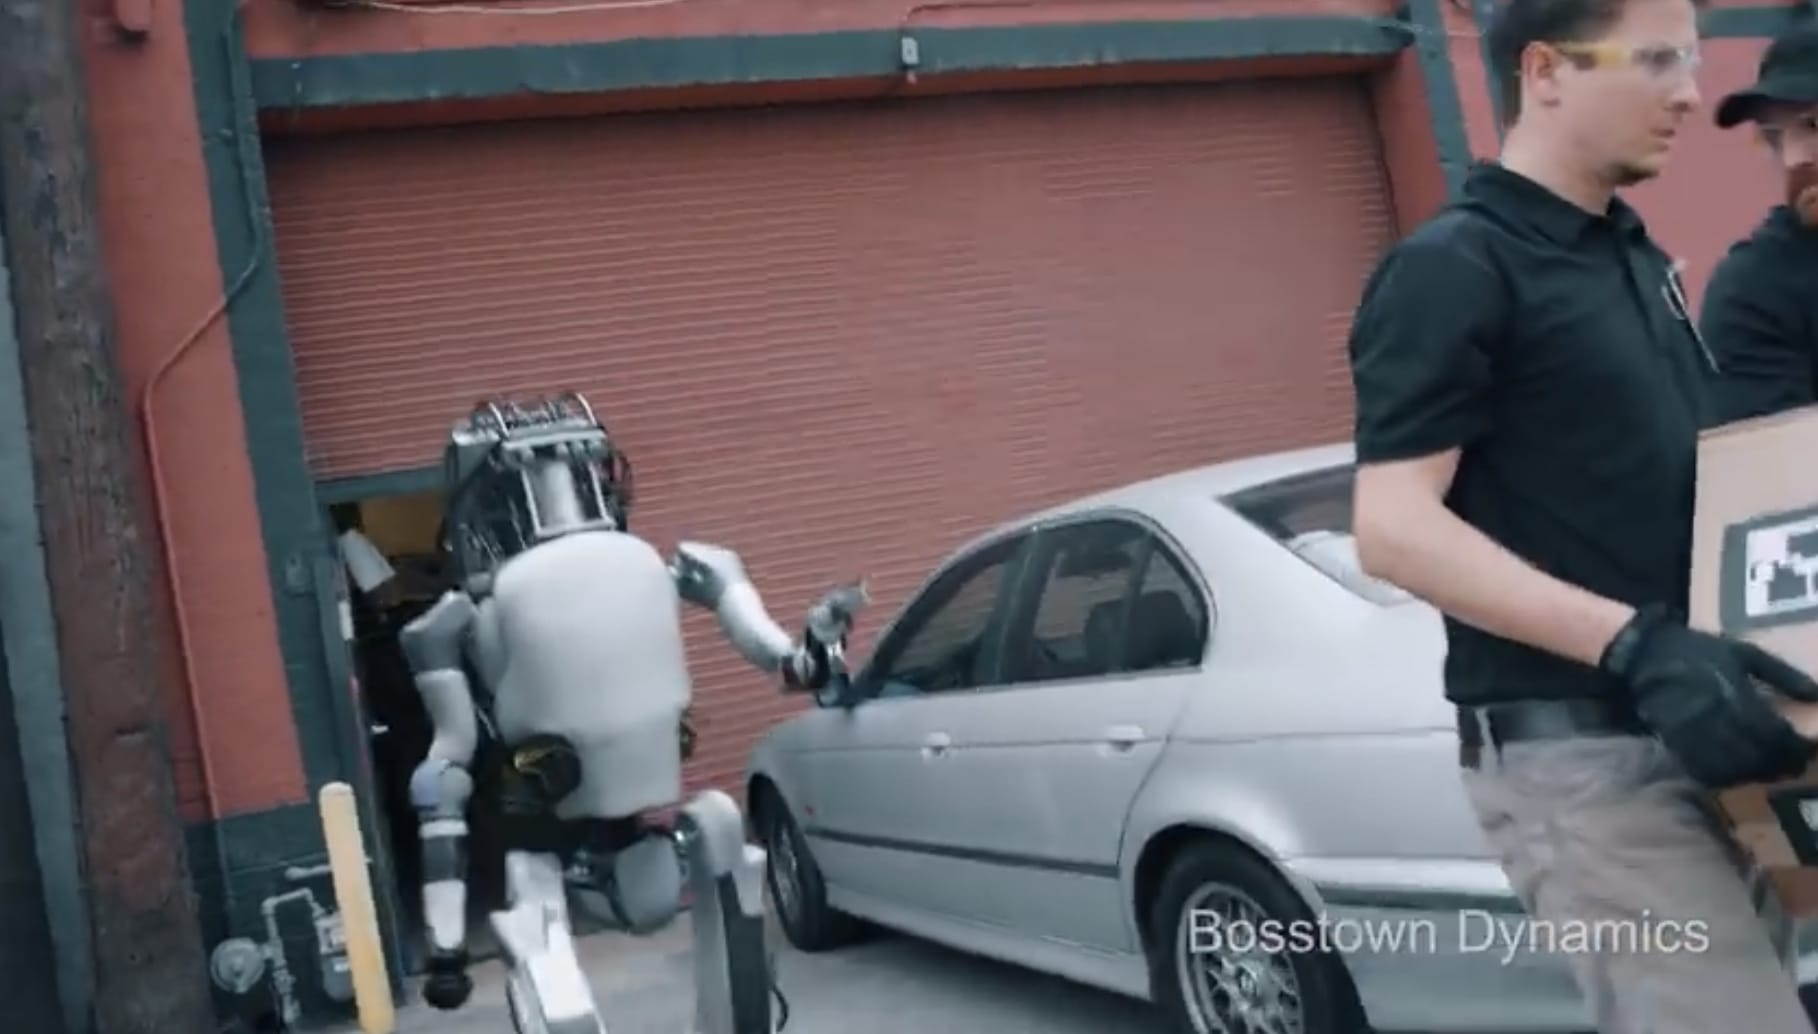 Robots Fight Back in Hilarious Boston Dynamics Parody Video